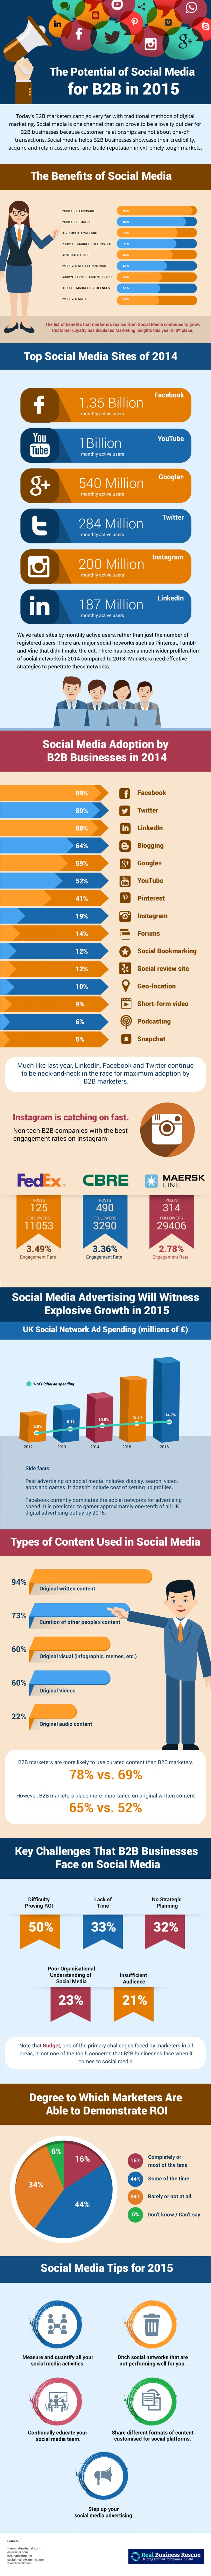 The Potential of Social Media for B2B in 2015